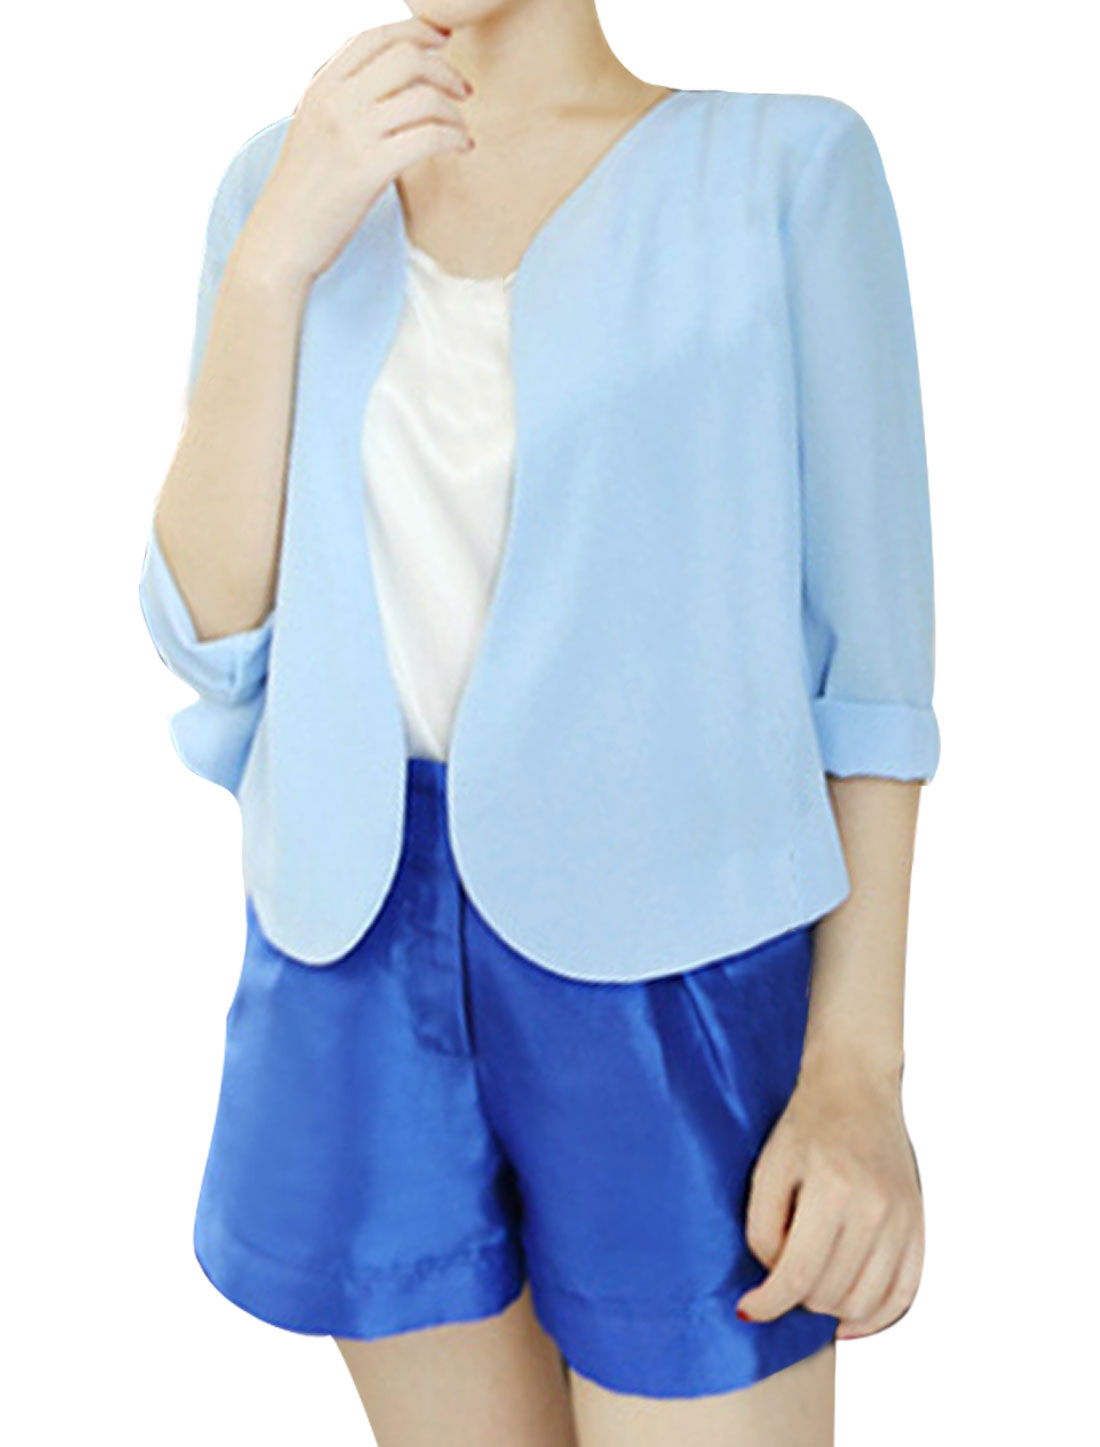 NEW Fashion Front Opening Light Blue Chiffon Cardigan Coat for Lady XS